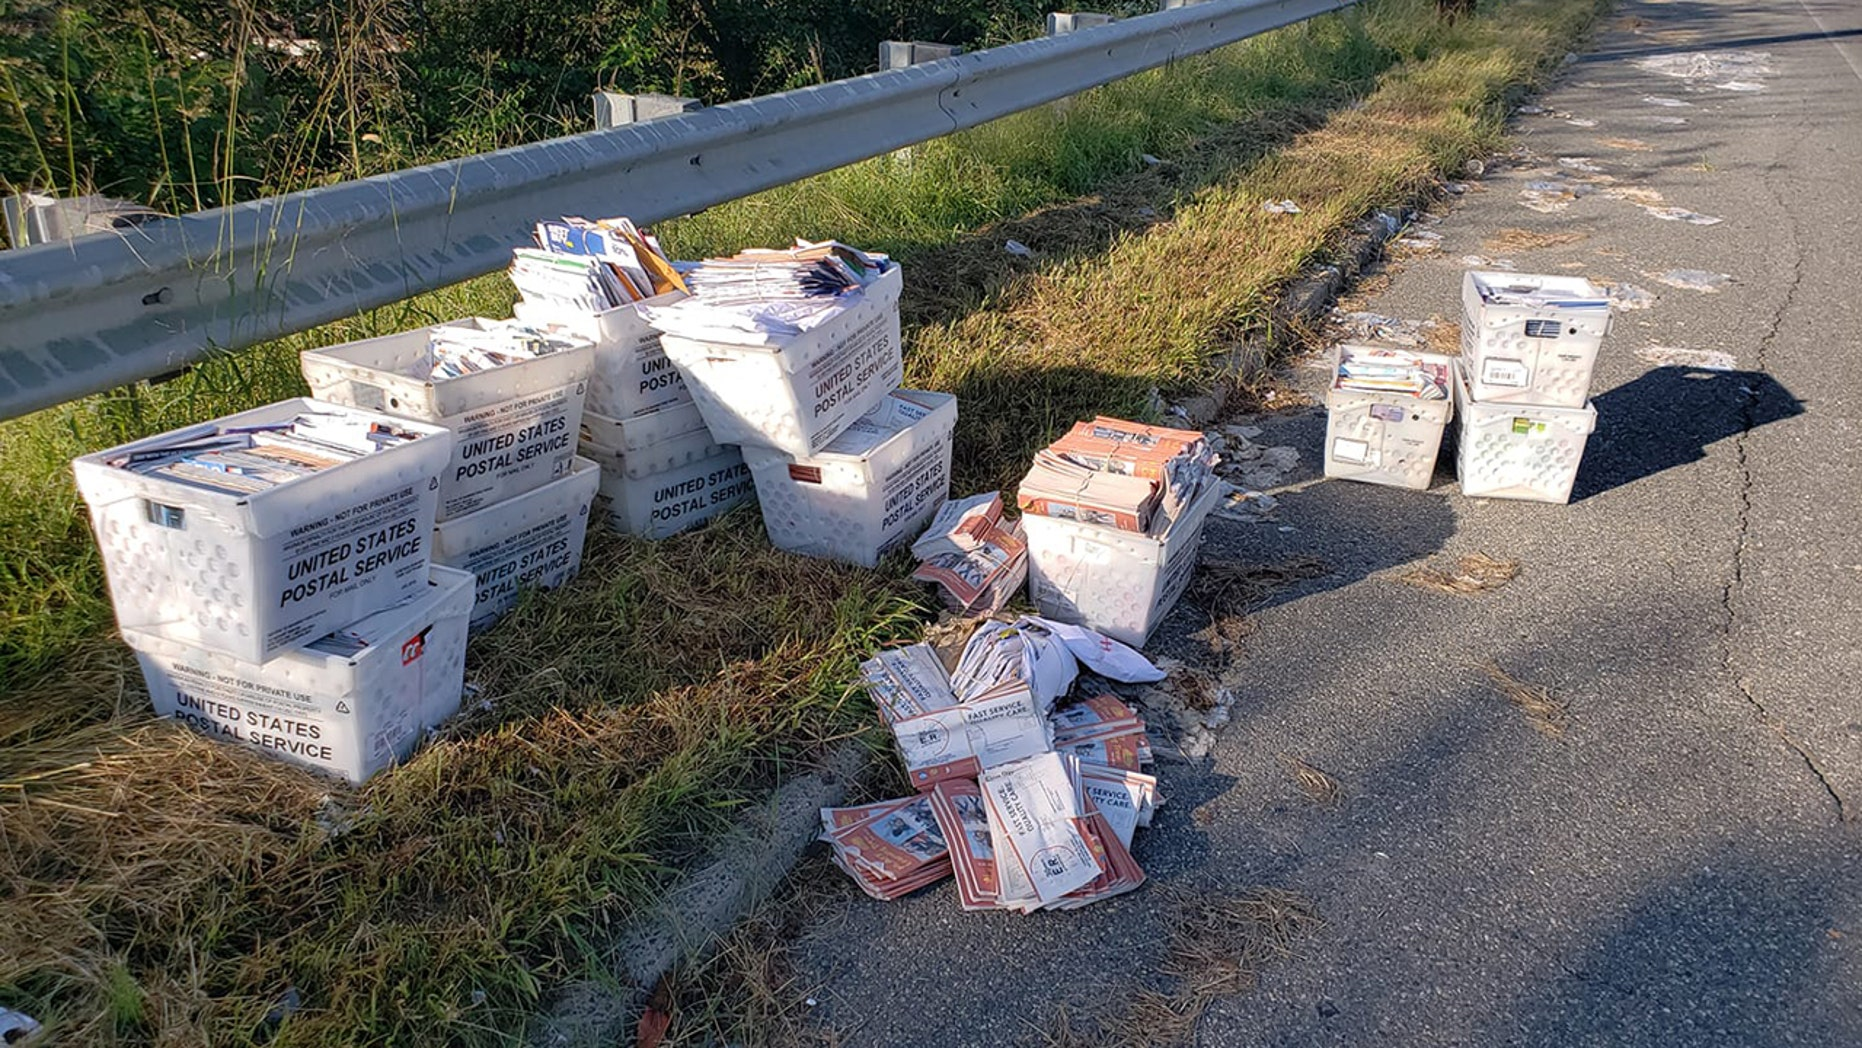 Mail carrier leaves mail on side of New Jersey road; quits job